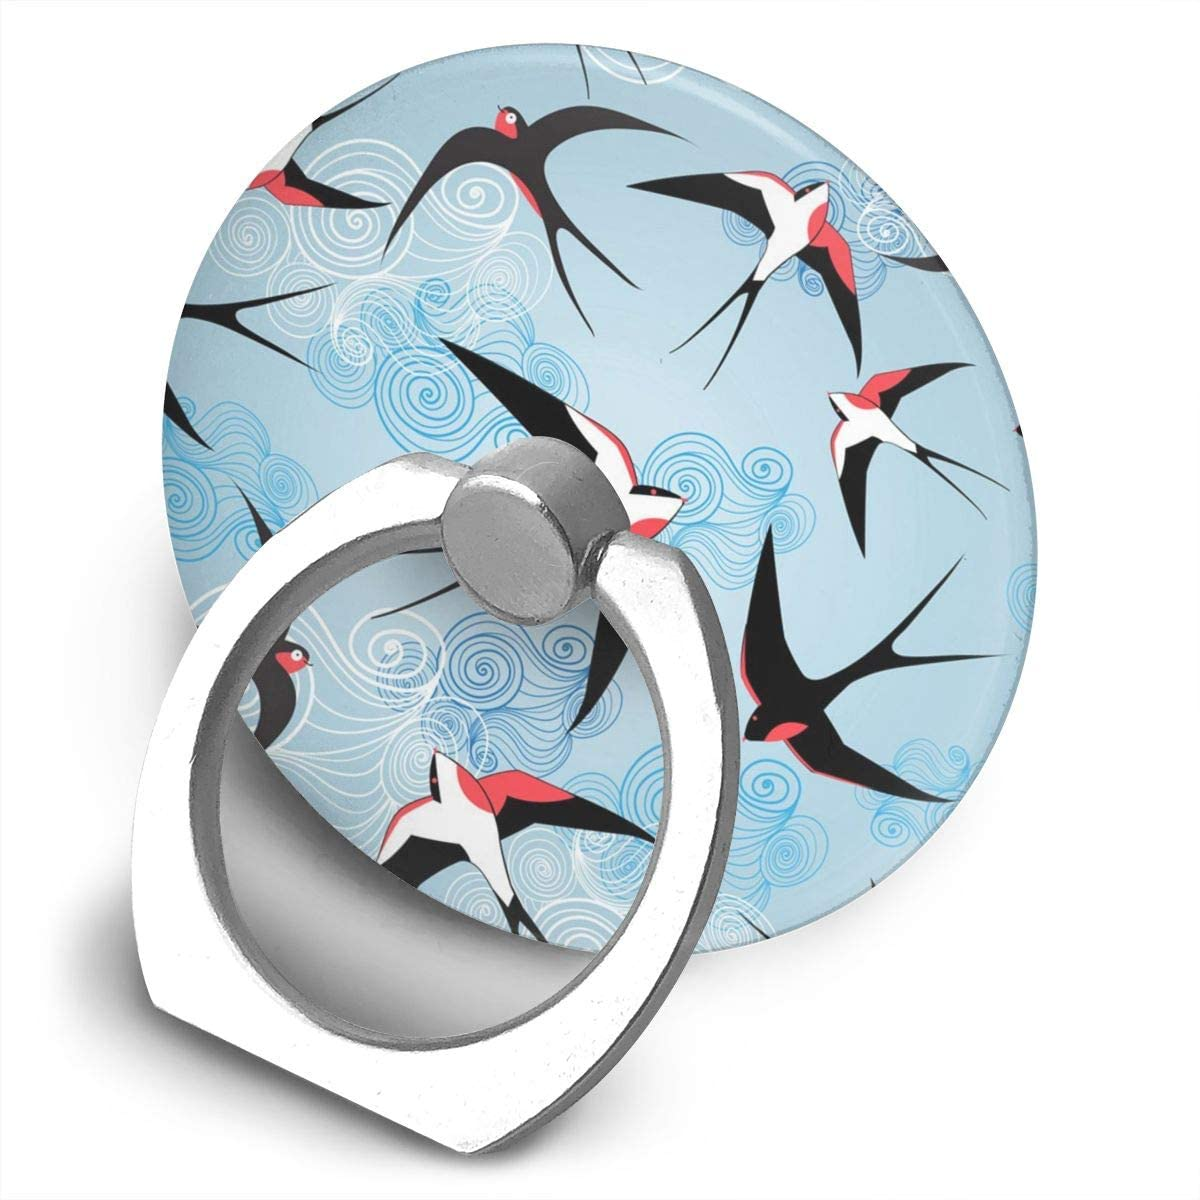 Universal Phone Ring Holder Fantastic Swallows Birds Adjustable 360°Rotation Round Finger Grip Loop Cell Phone Stand for Phone X/6/6s/7/8/8/10/11 Plus Smartphone Android